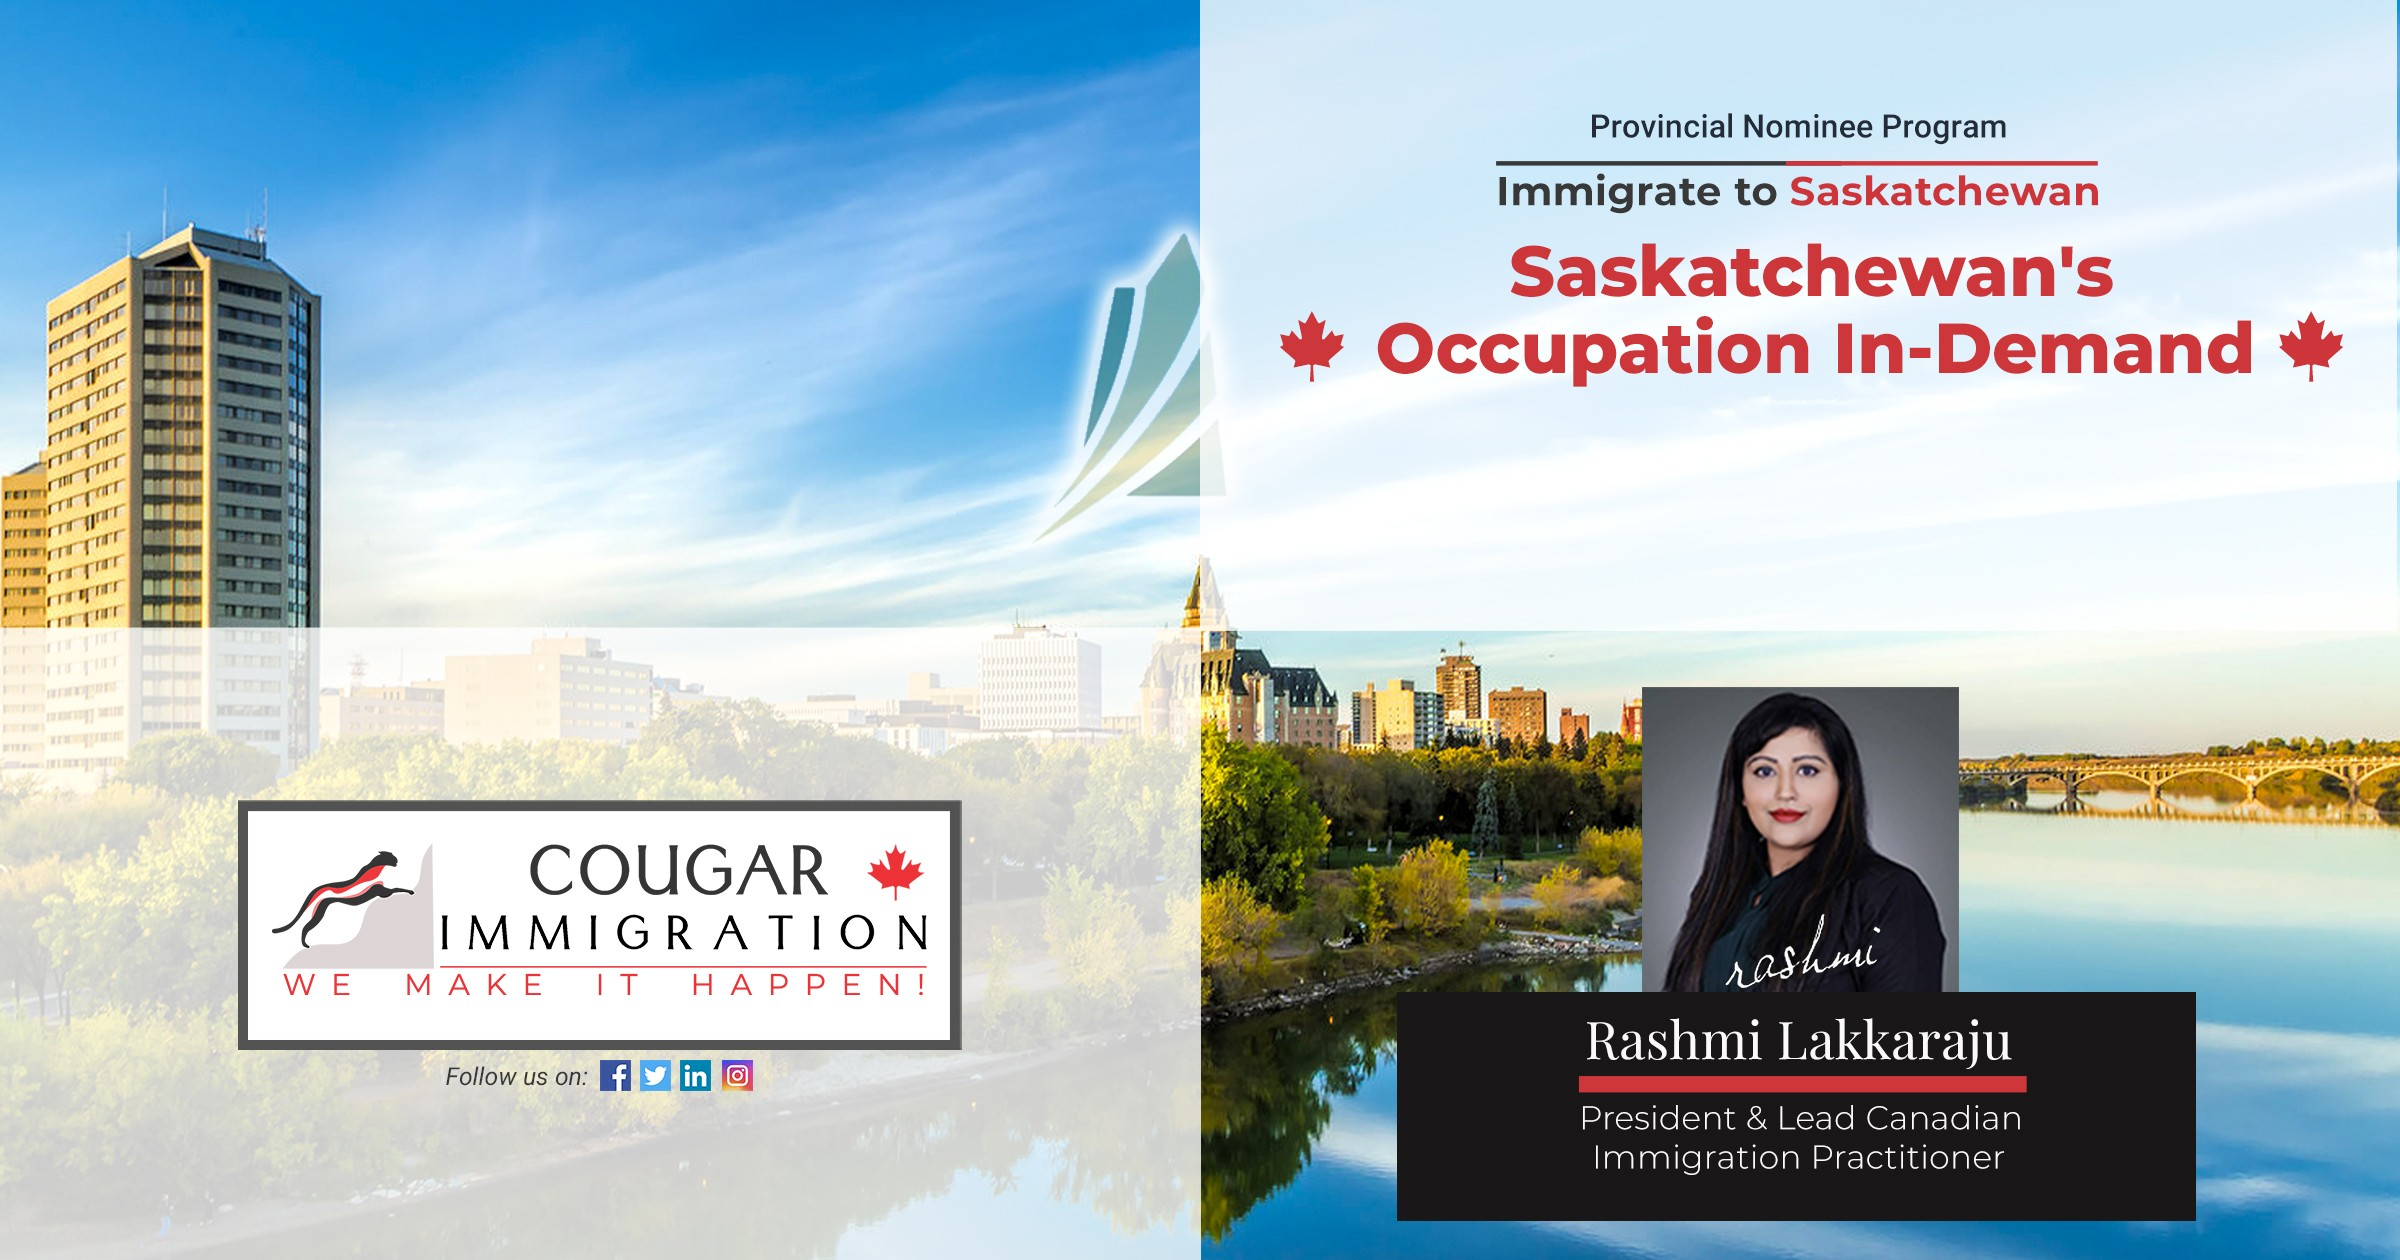 Saskatchewan's Occupation In-Demand